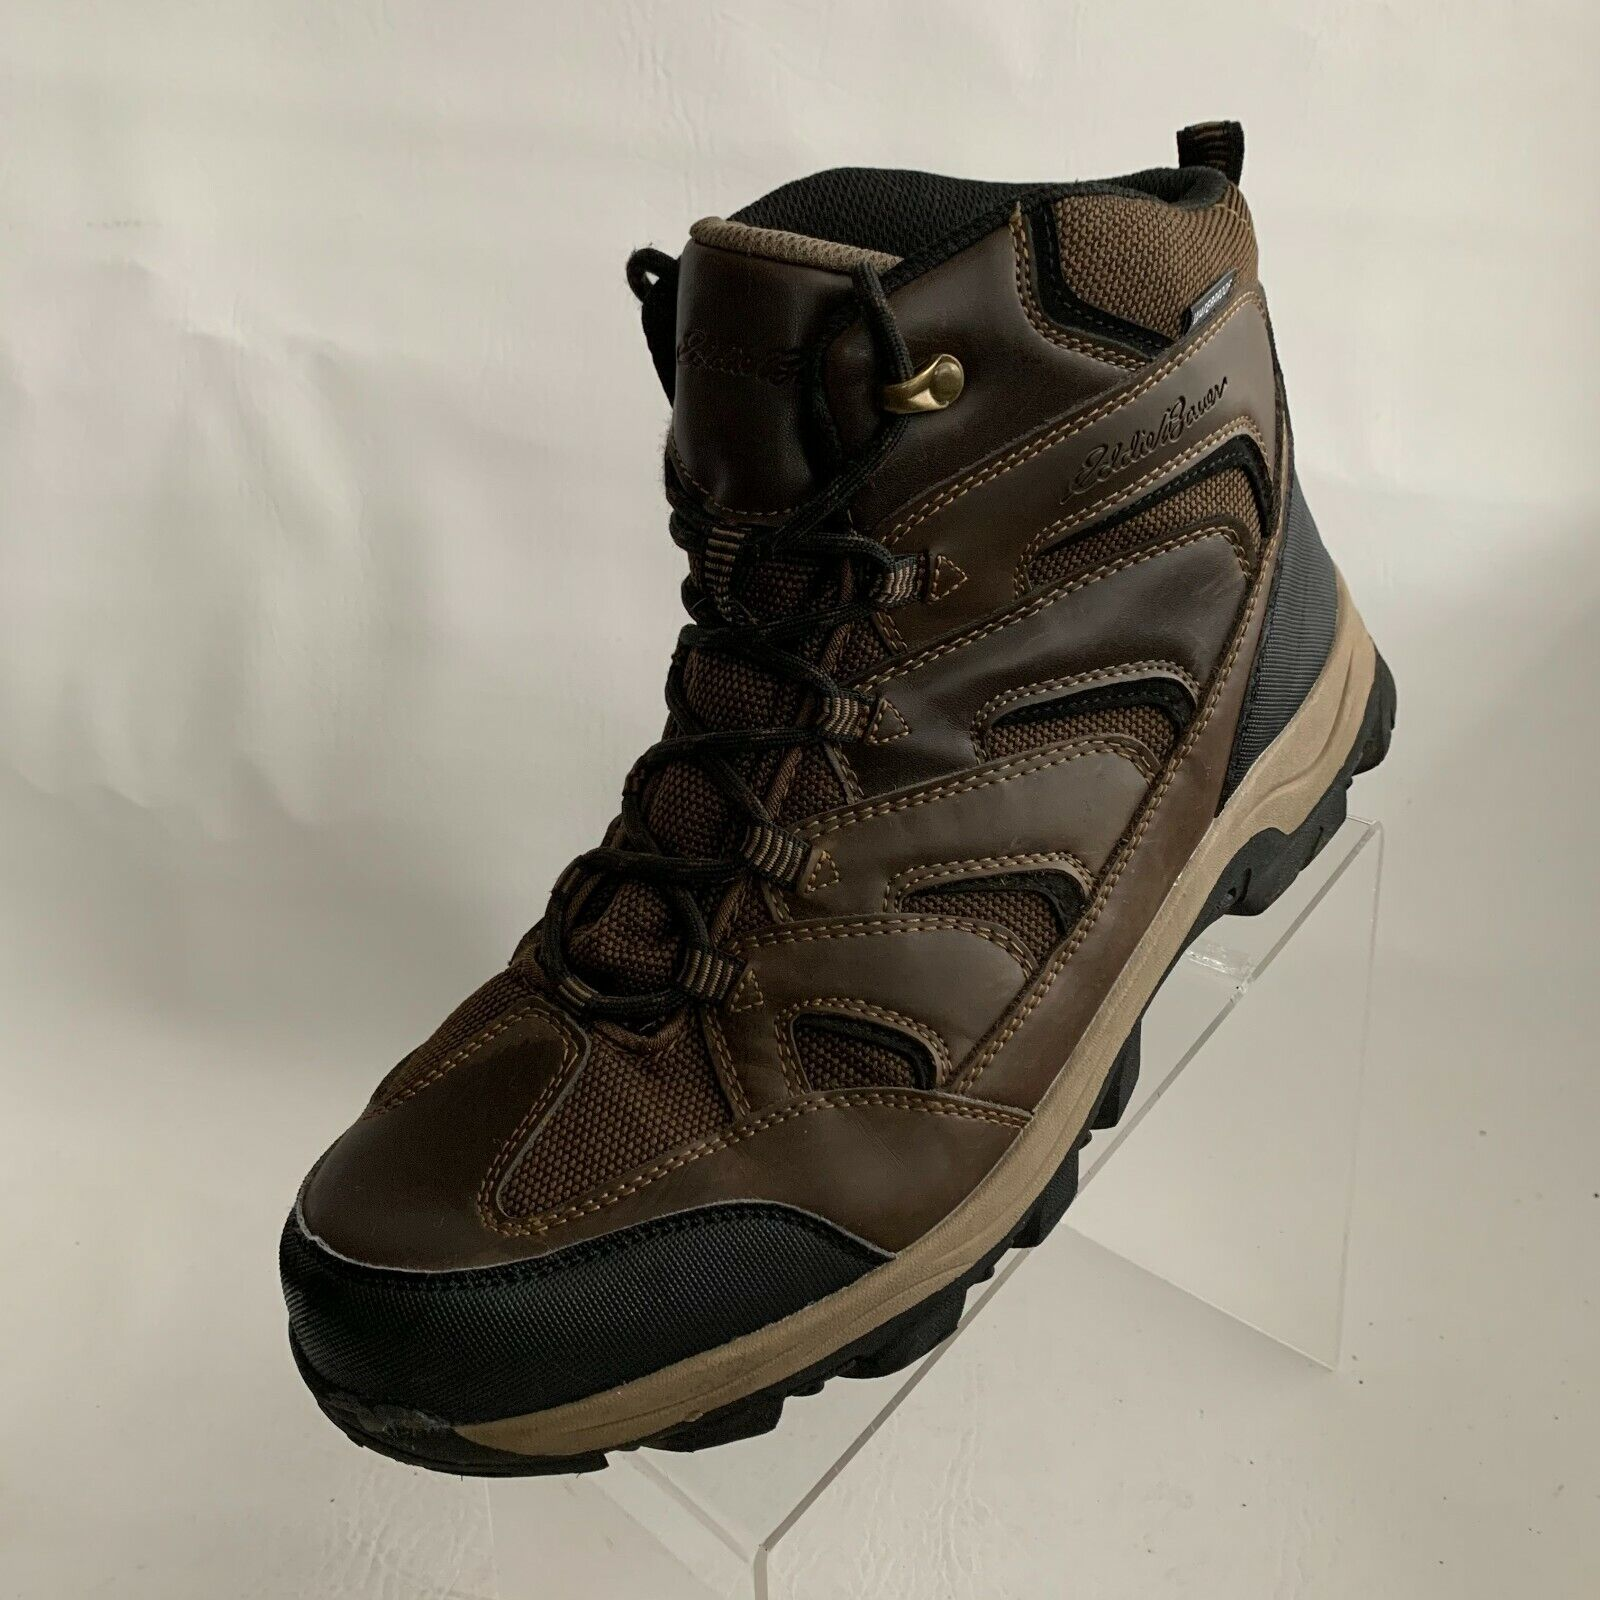 Eddie Bauer Mens Fairmont Ankle Boots Brown Leather Waterproof Lace Up Size 12M